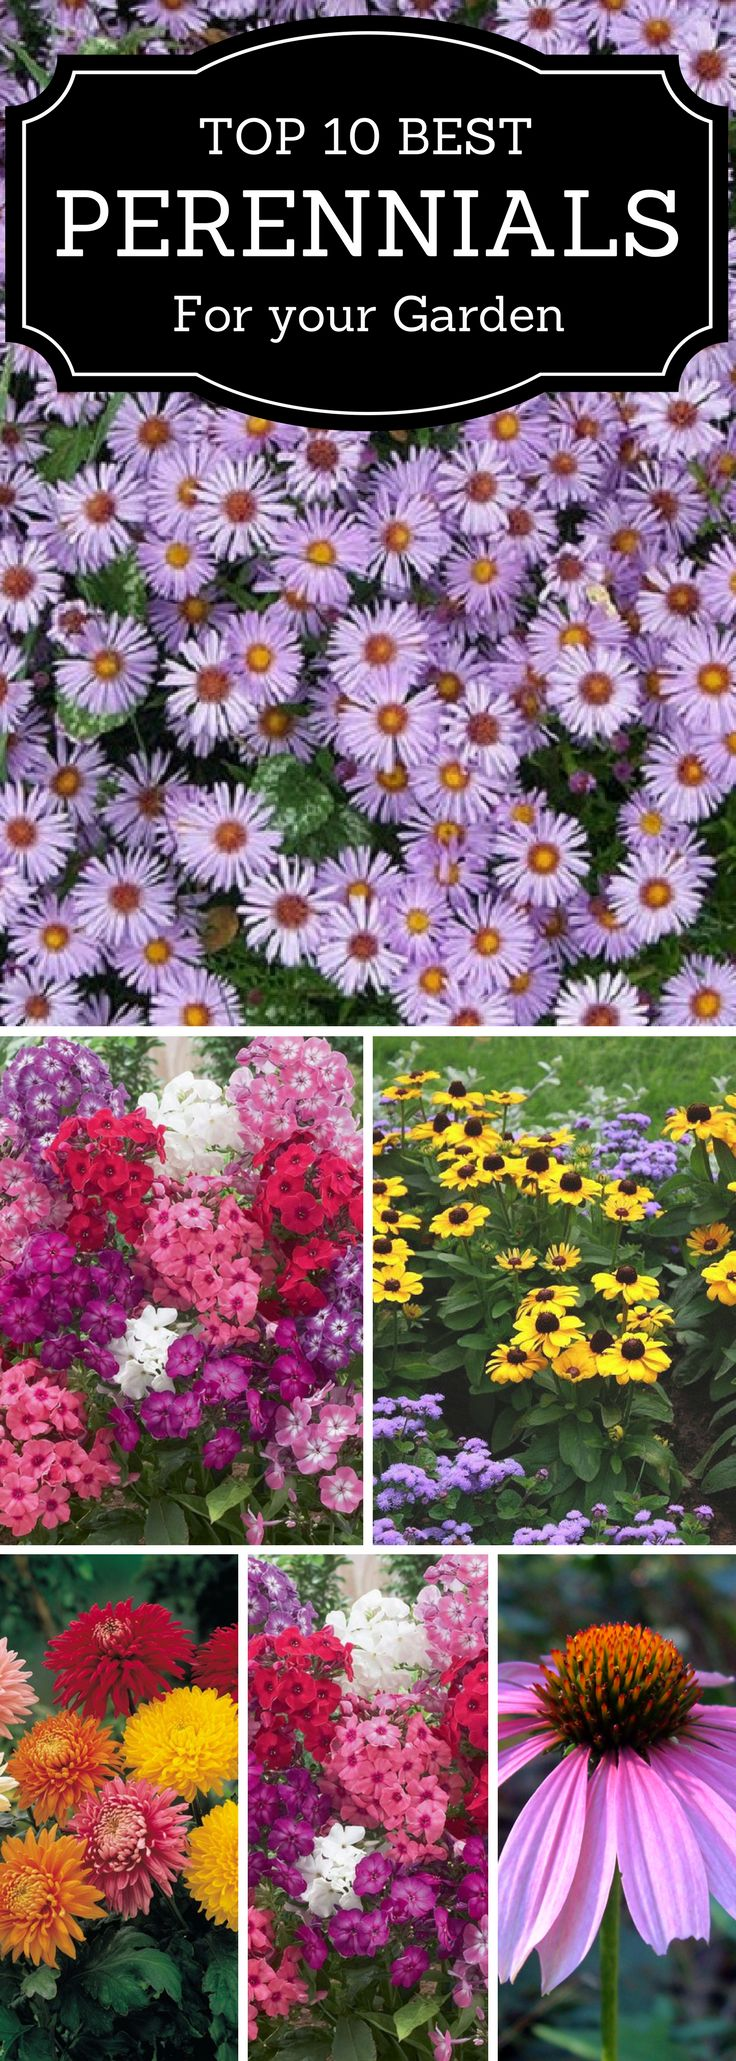 Asters &mums for fall, , coneflowers & black eyed susans for summer, daylilly & irises for spring